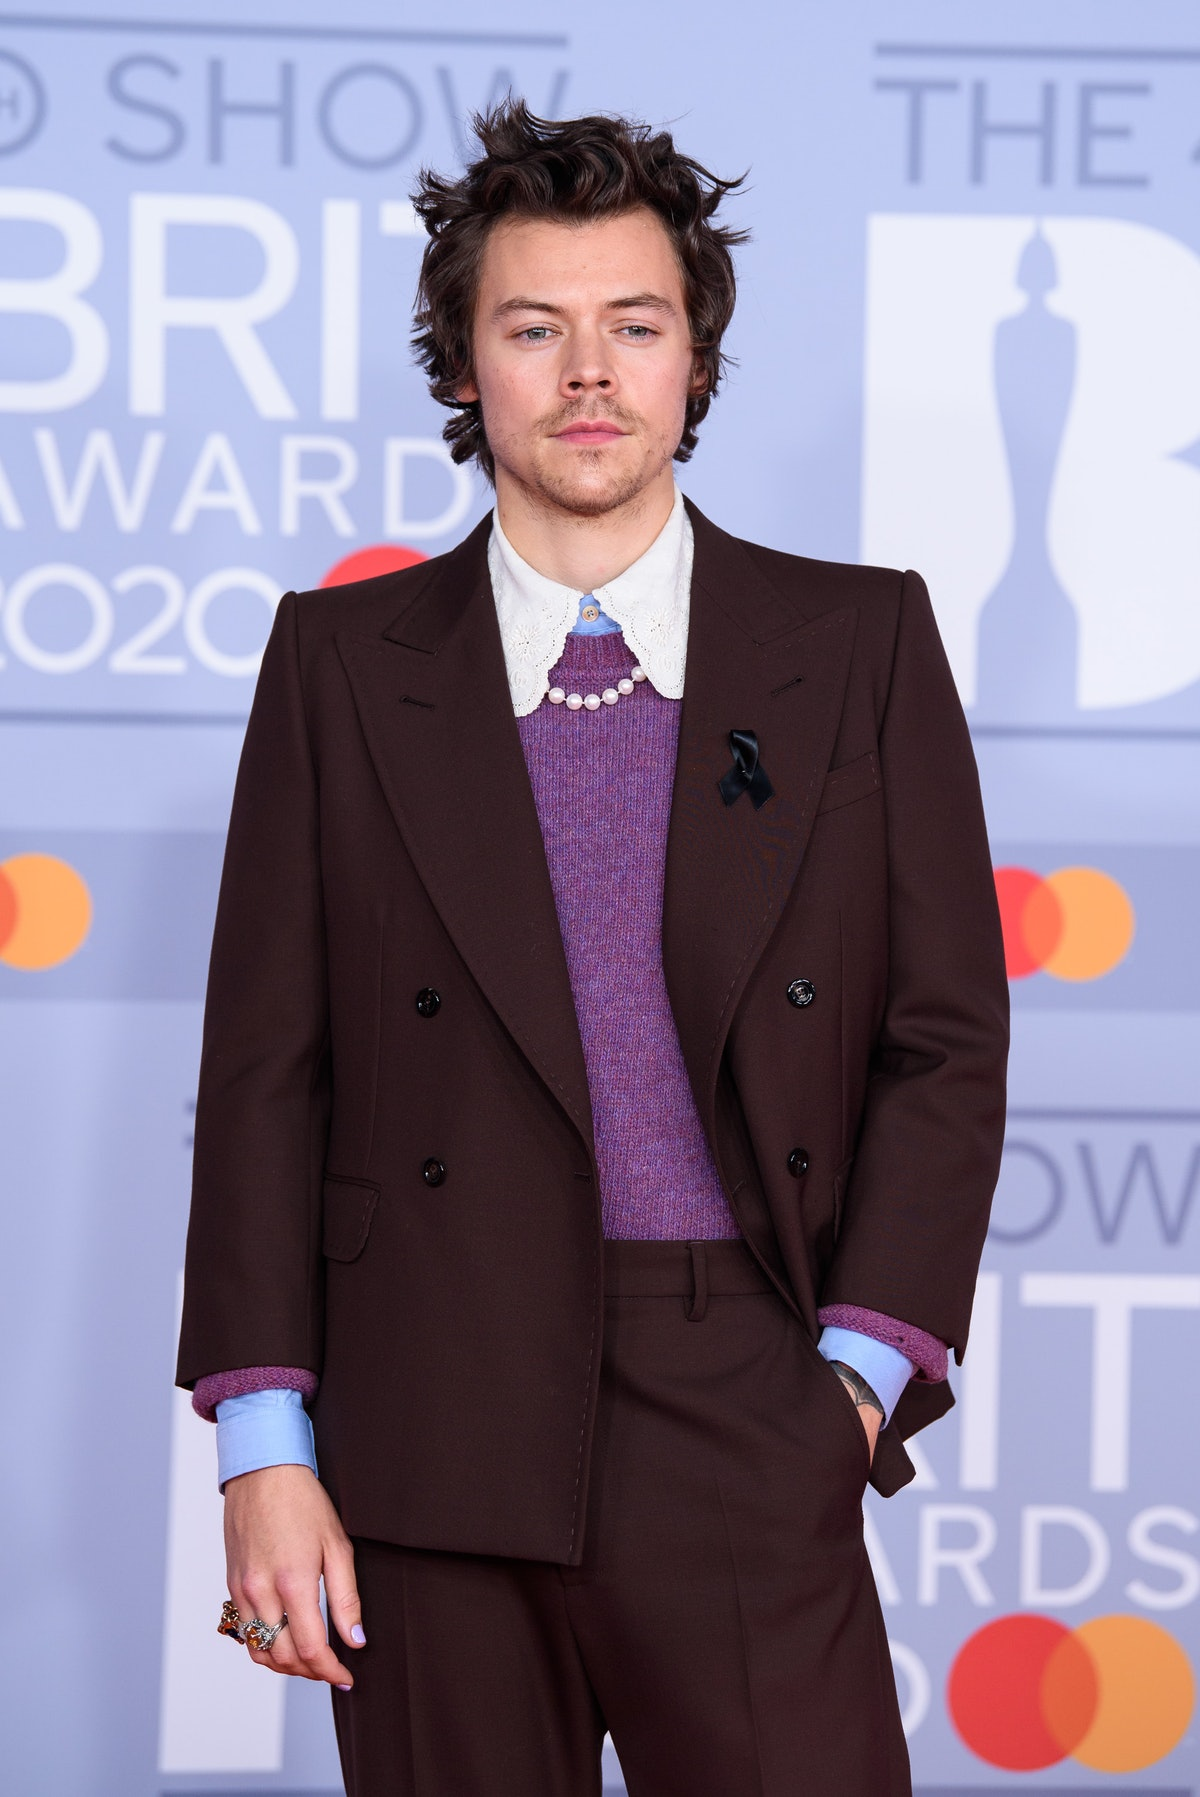 LONDON, ENGLAND - FEBRUARY 18: (EDITORIAL USE ONLY) Harry Styles attends The BRIT Awards 2020 at The O2 Arena on February 18, 2020 in London, England. (Photo by Joe Maher/Getty Images for Bauer Media)